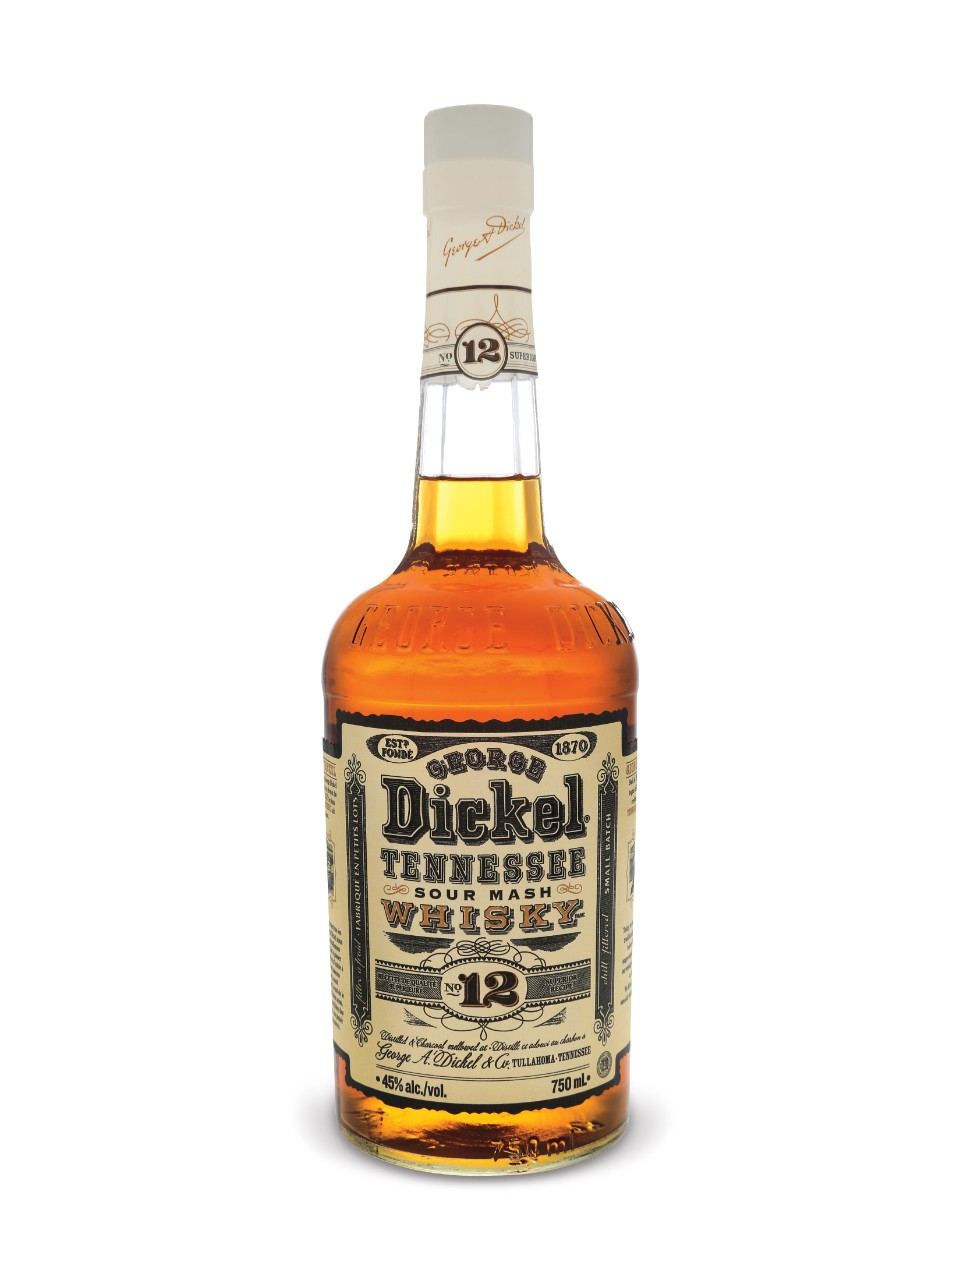 George Dickel Tennessee Whisky No. 12 from LCBO